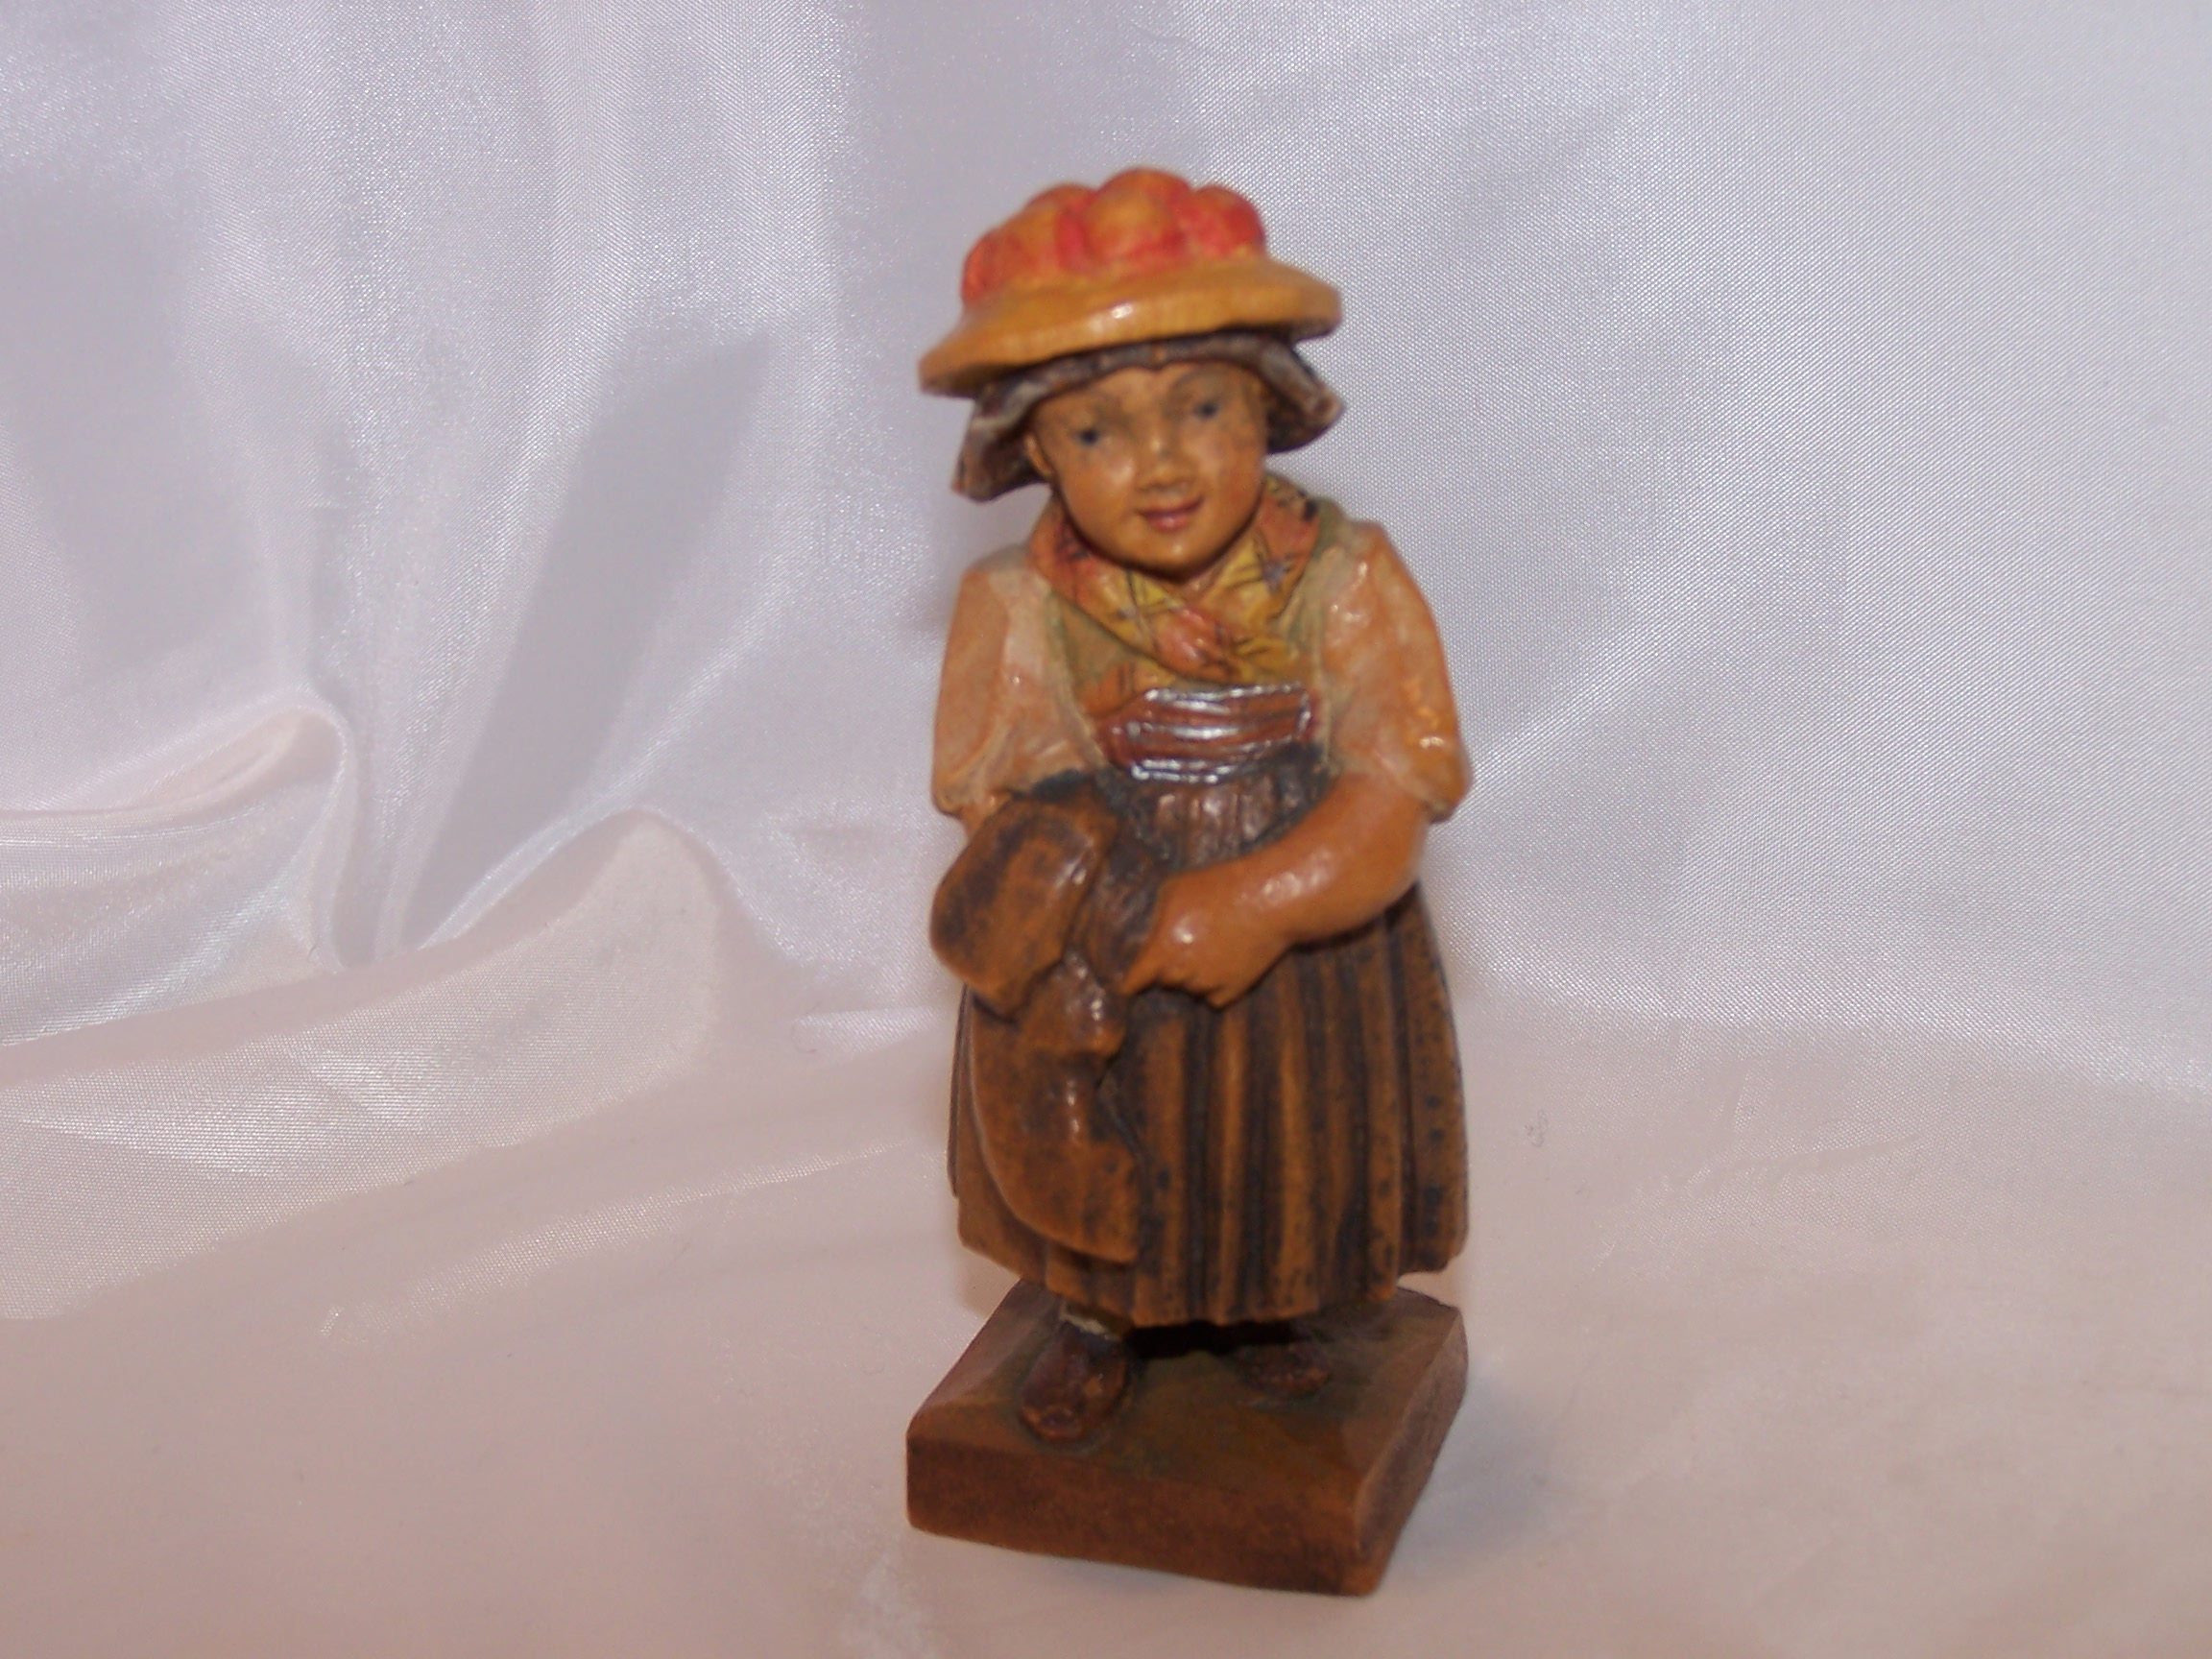 European Woman Figurine, Hand Carved, Wooden Wood